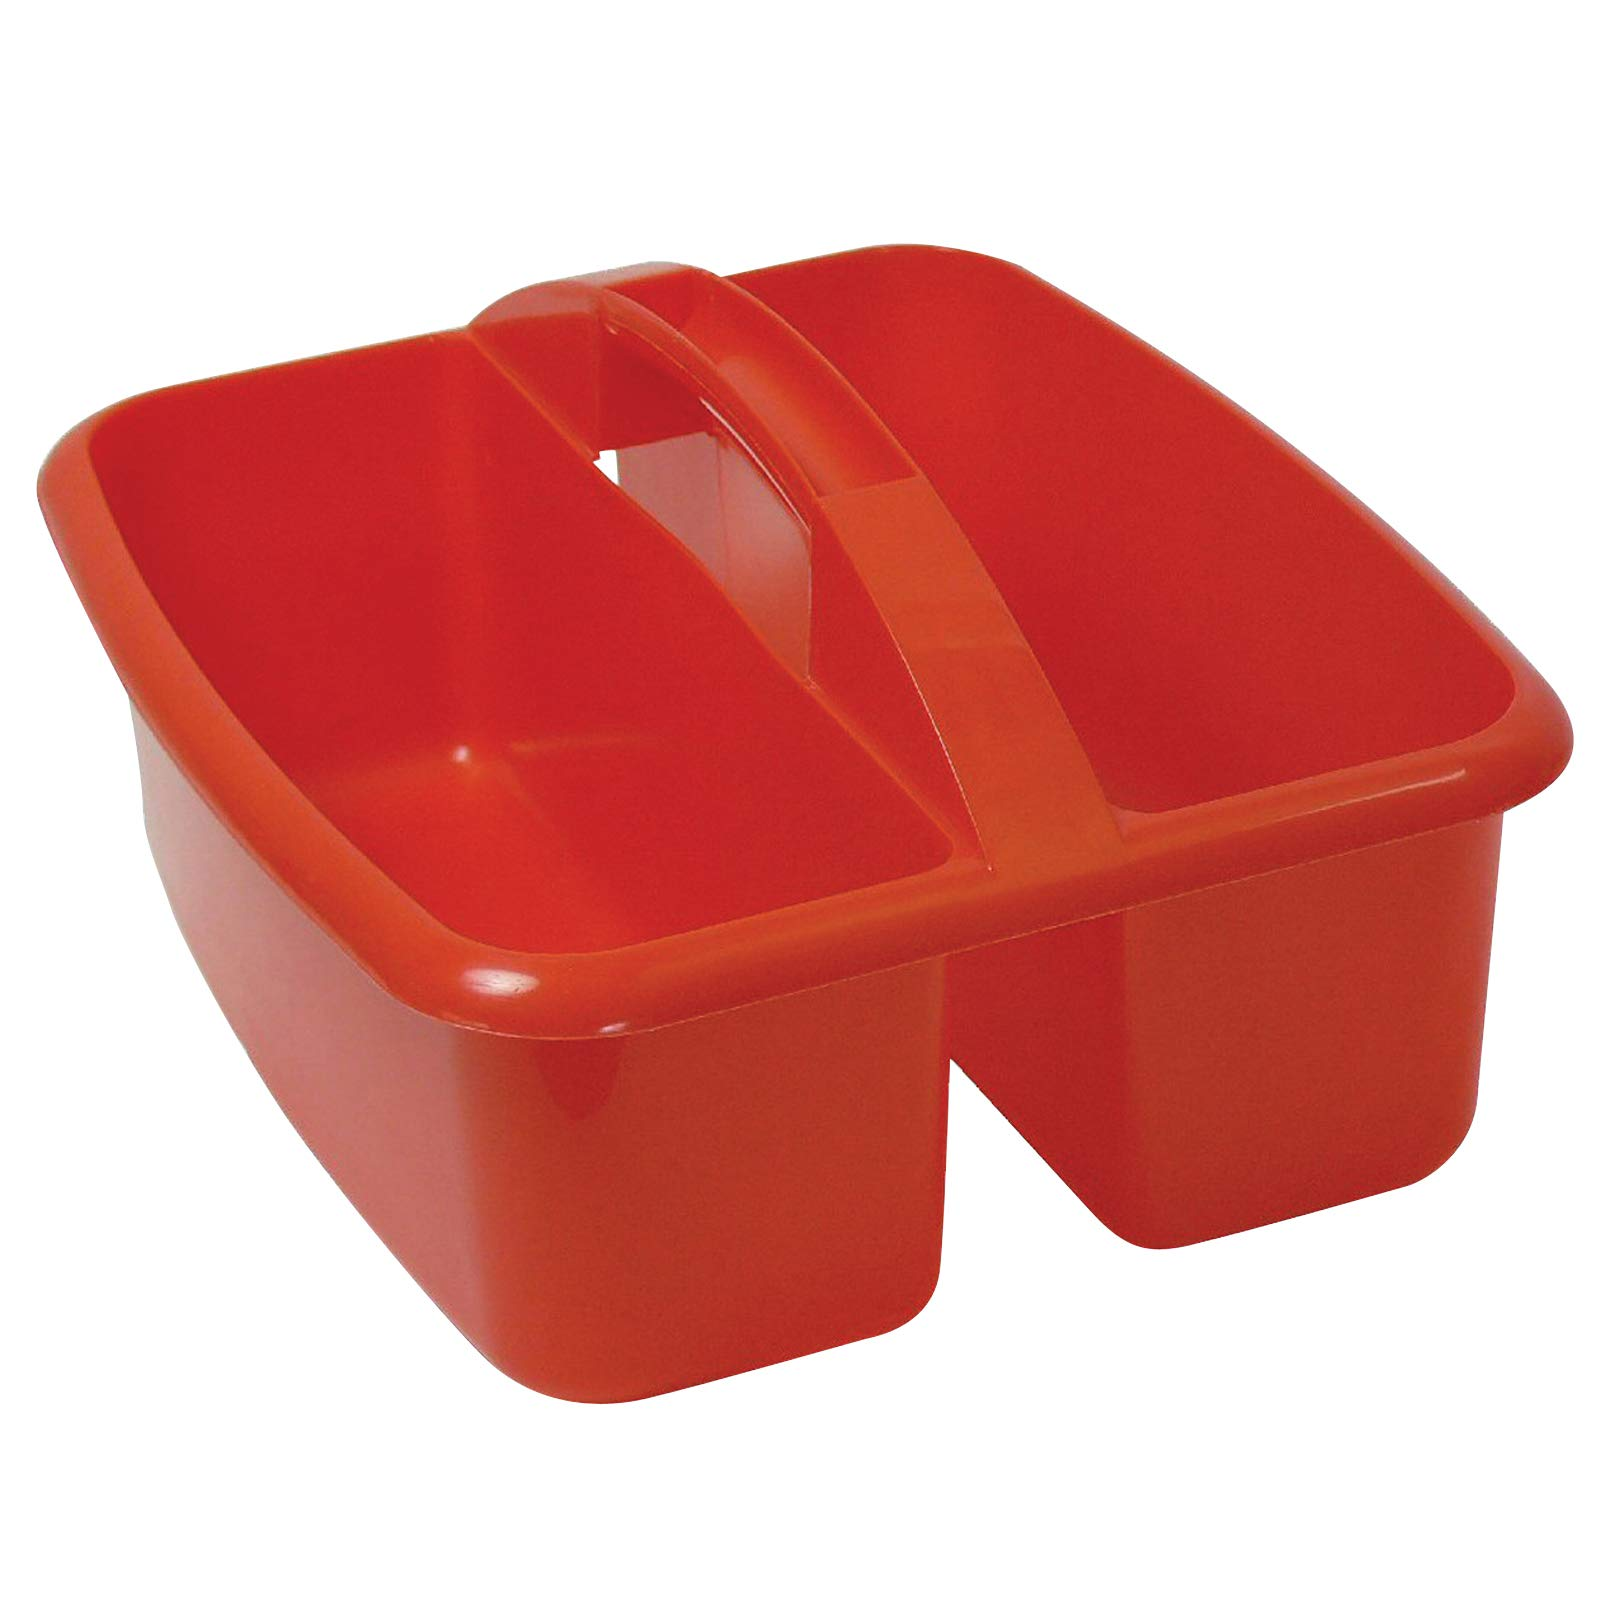 Romanoff Products ROM26002BN Large Utility Caddy, Red, Pack of 3